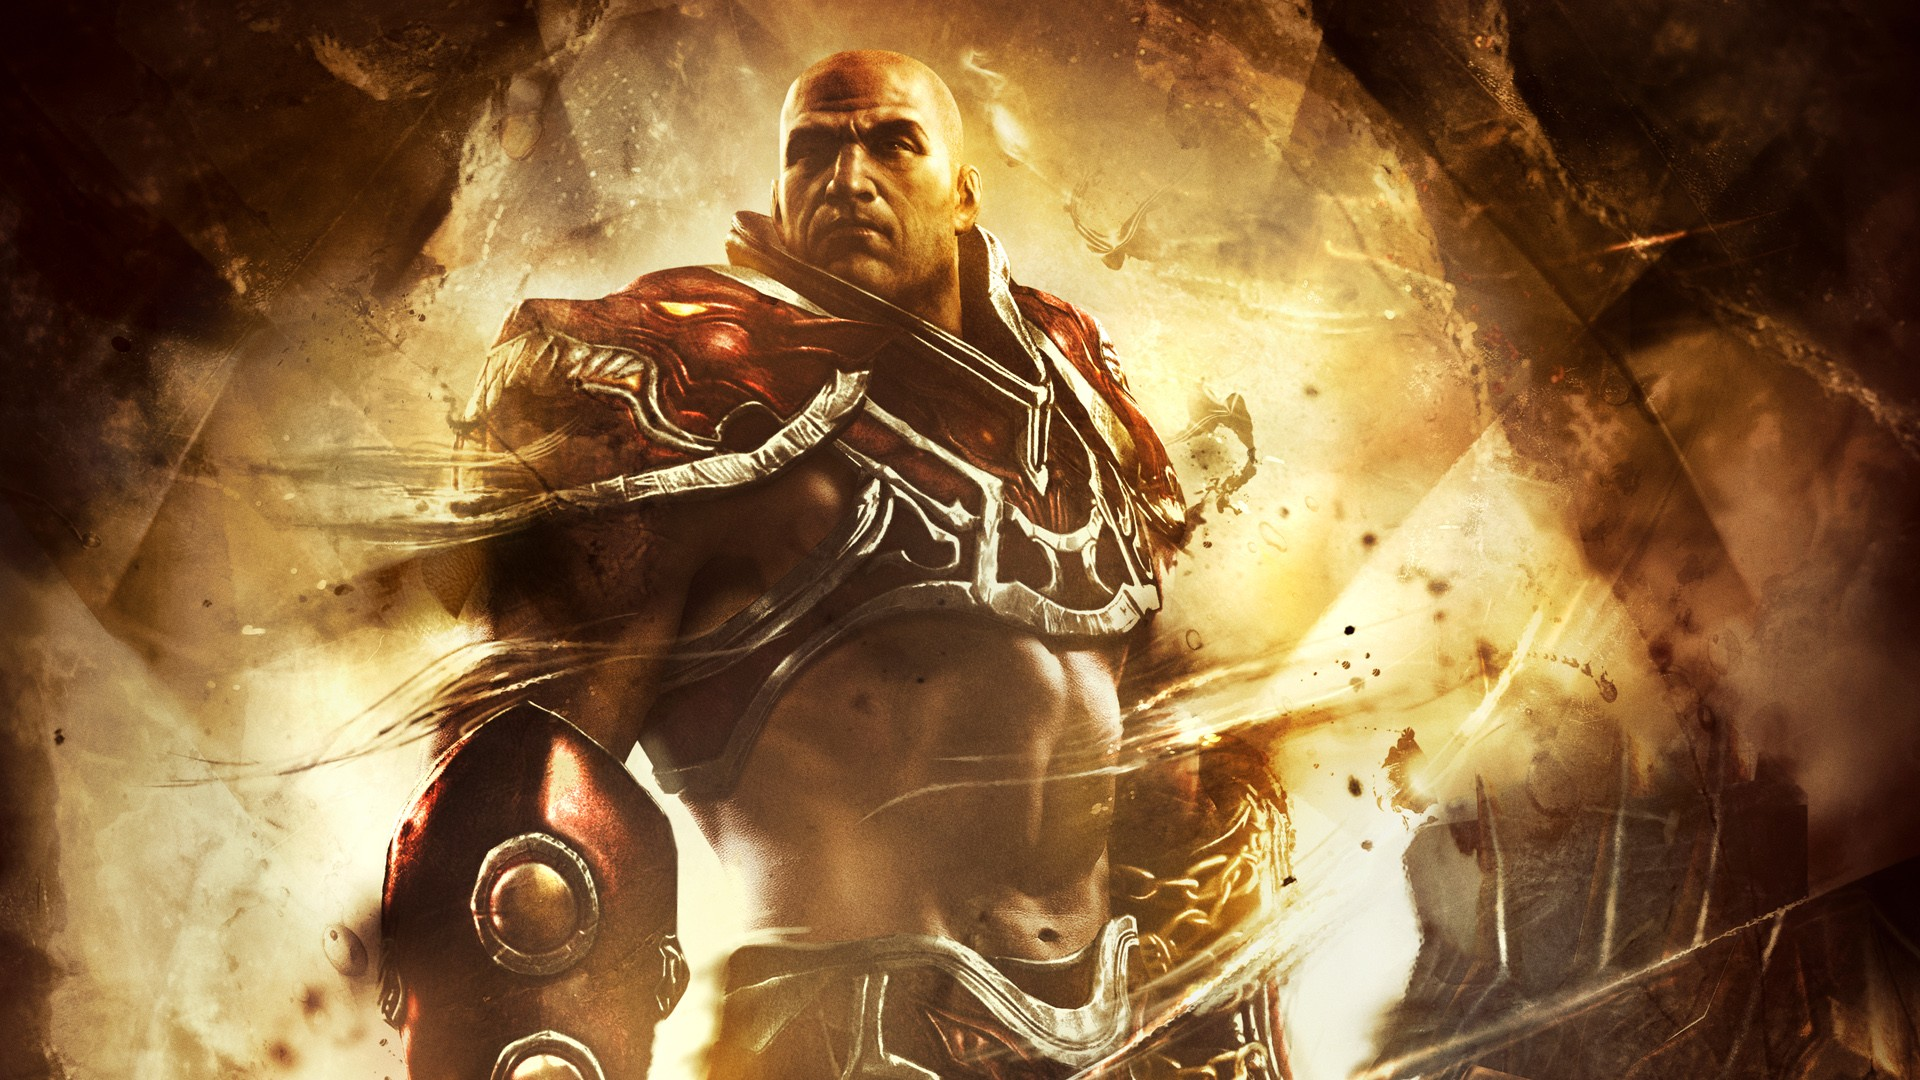 Hd Knife Wallpaper Spartan Warrior God Of War Ascension Wallpapers Hd